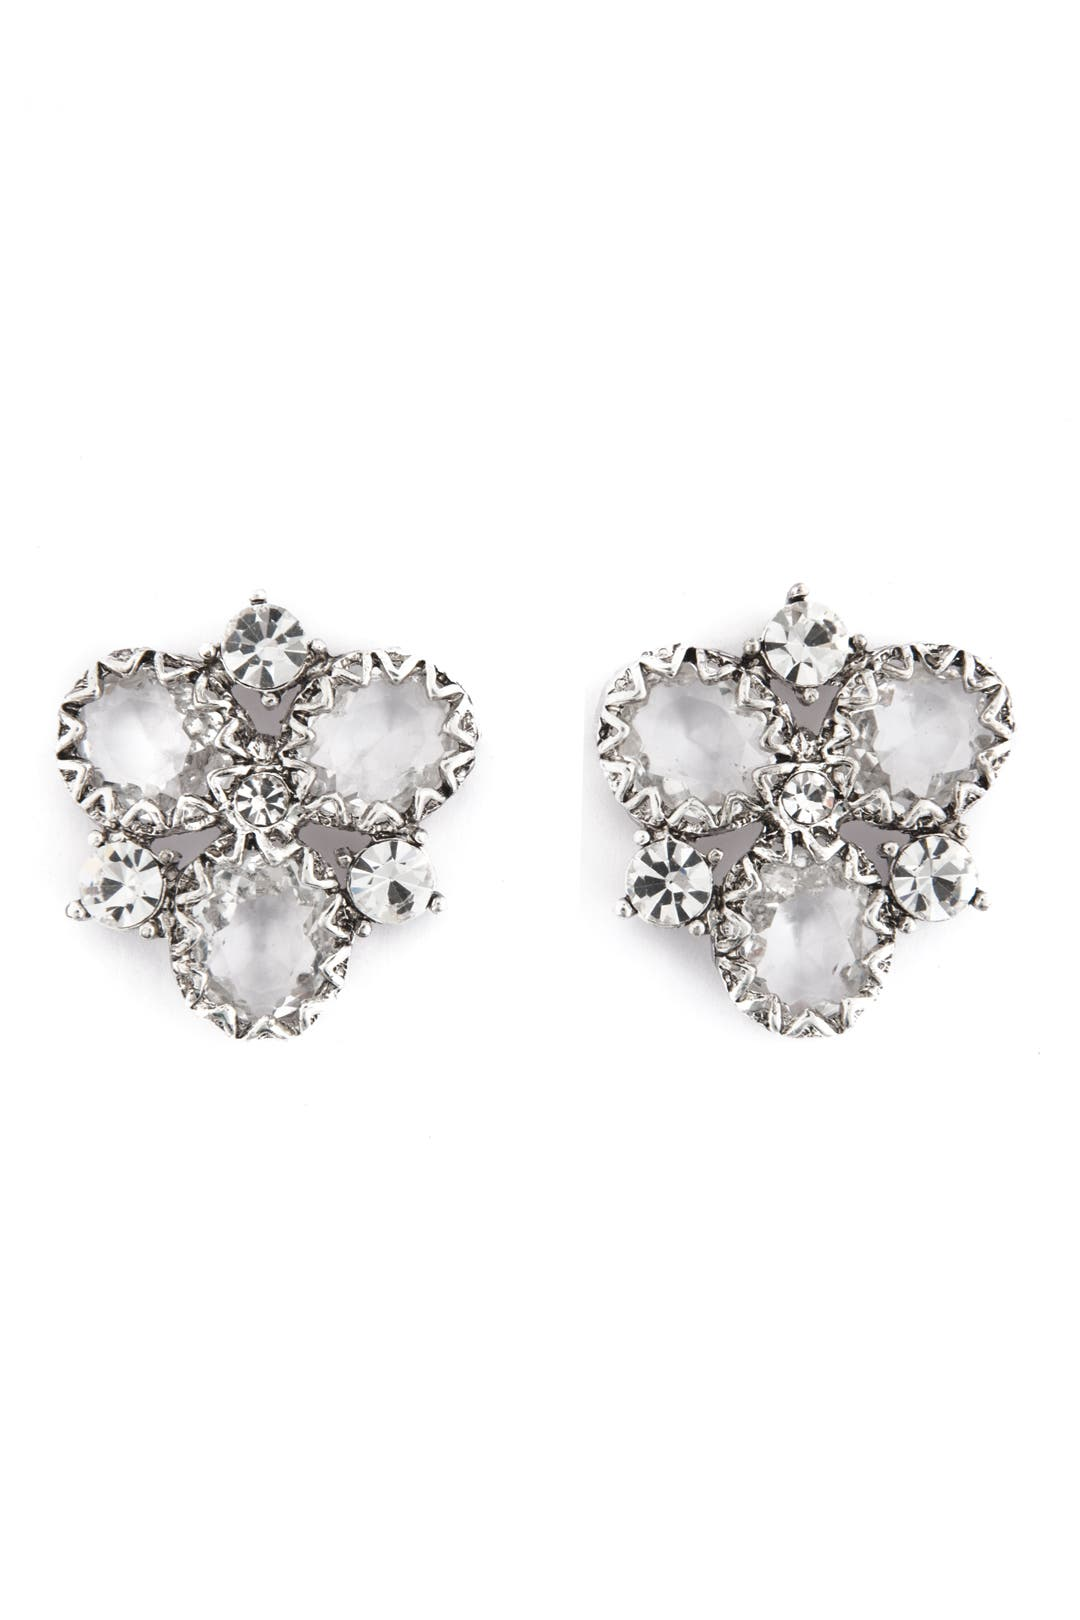 Crystal Cluster Earrings by Badgley Mischka Jewelry